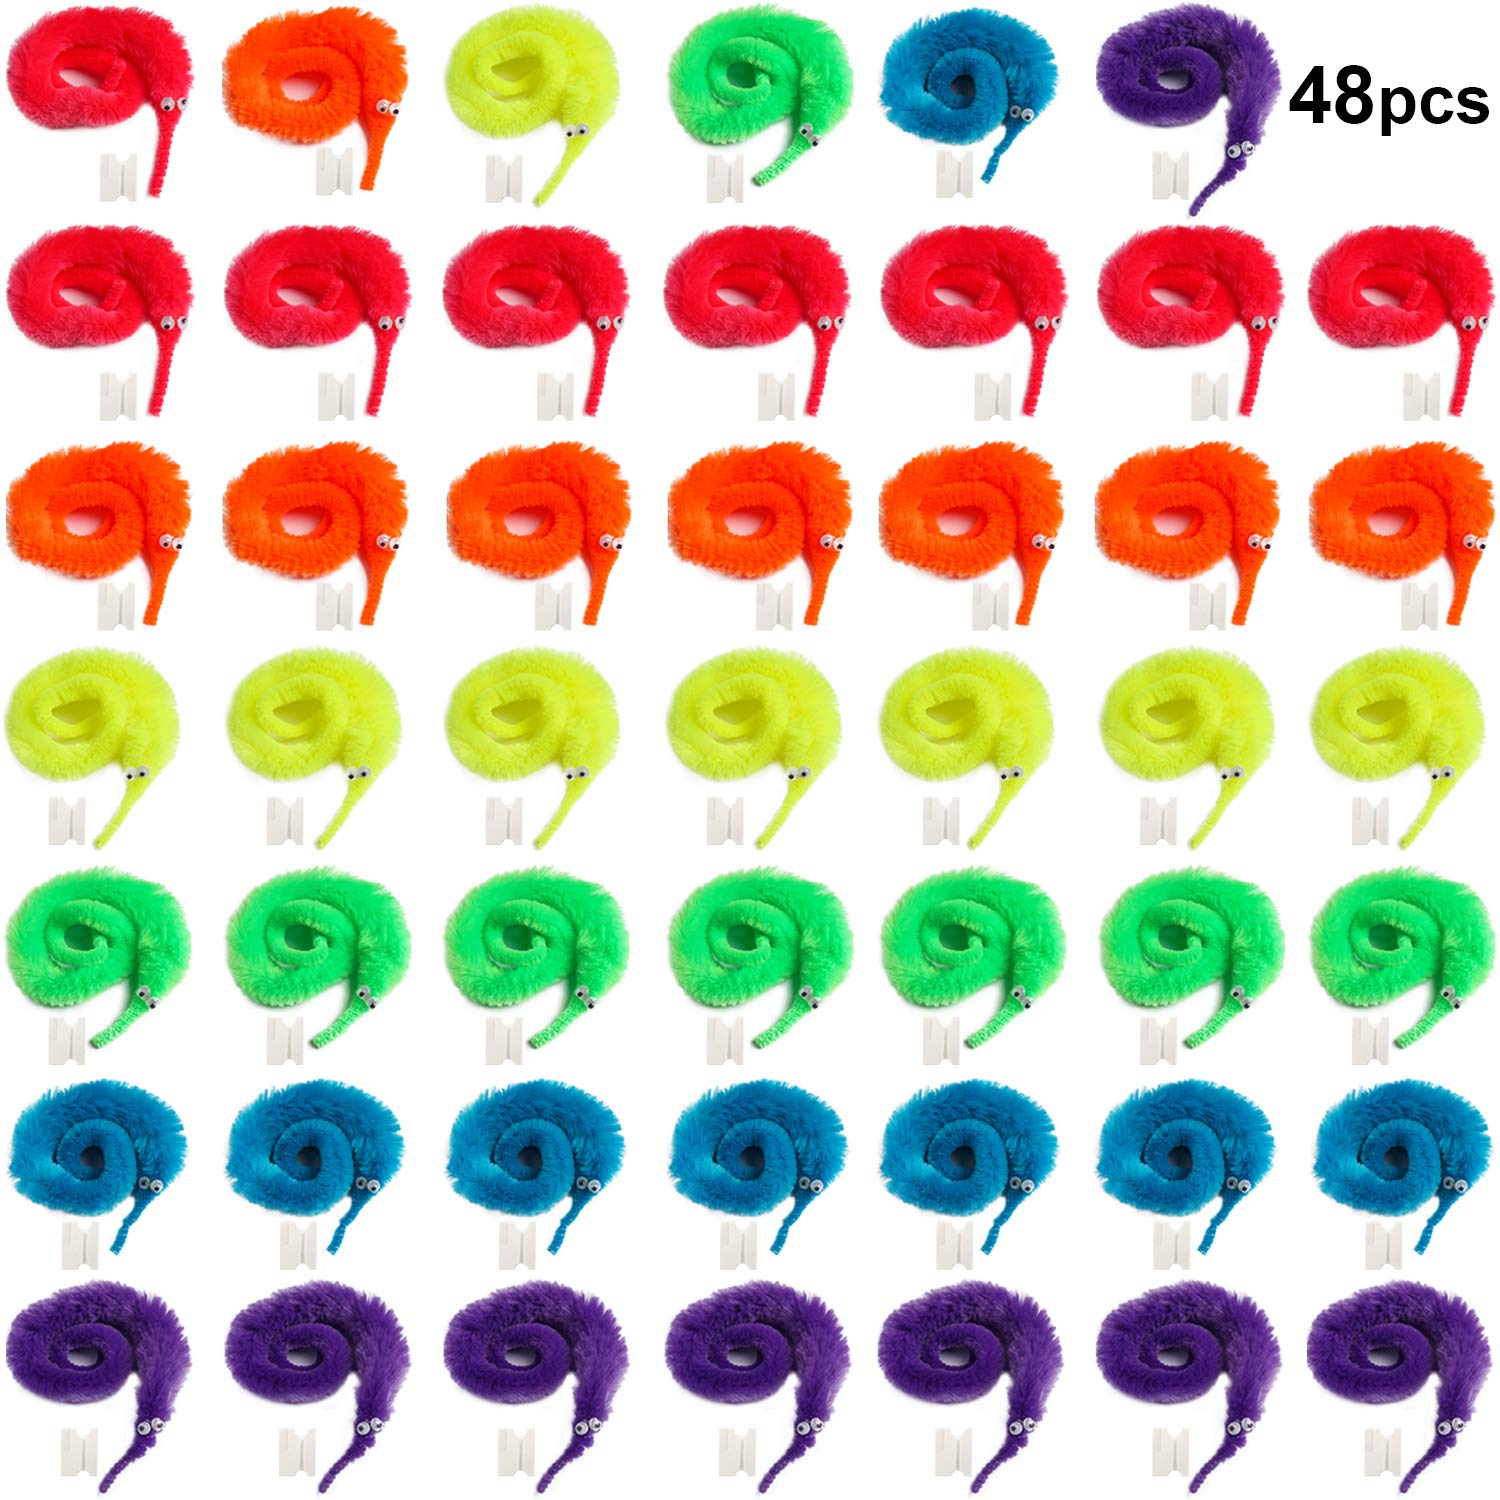 Tanlee 48 Pieces Magic Magic Wiggly Twisty Fuzzy Worm Magic Worm Toys for Party Supplies, Random Color (48 Pieces) by Tanlee